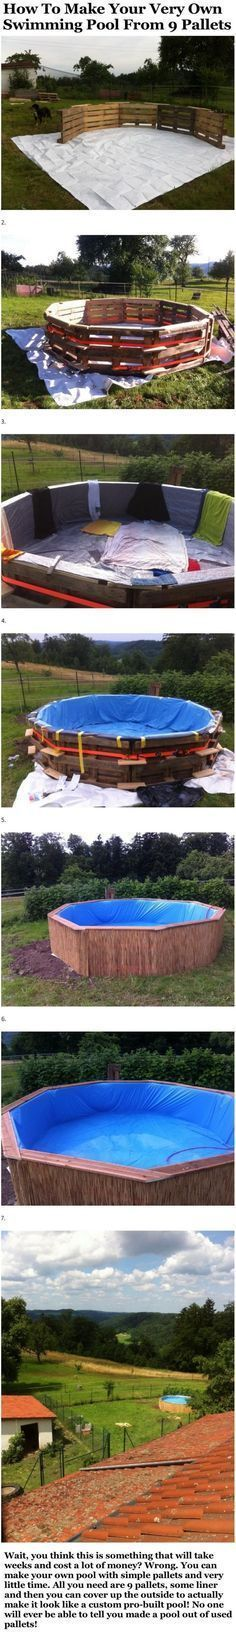 423 best Garten images on Pinterest Outdoor kitchens, Outdoor - pool mit glaswand garten